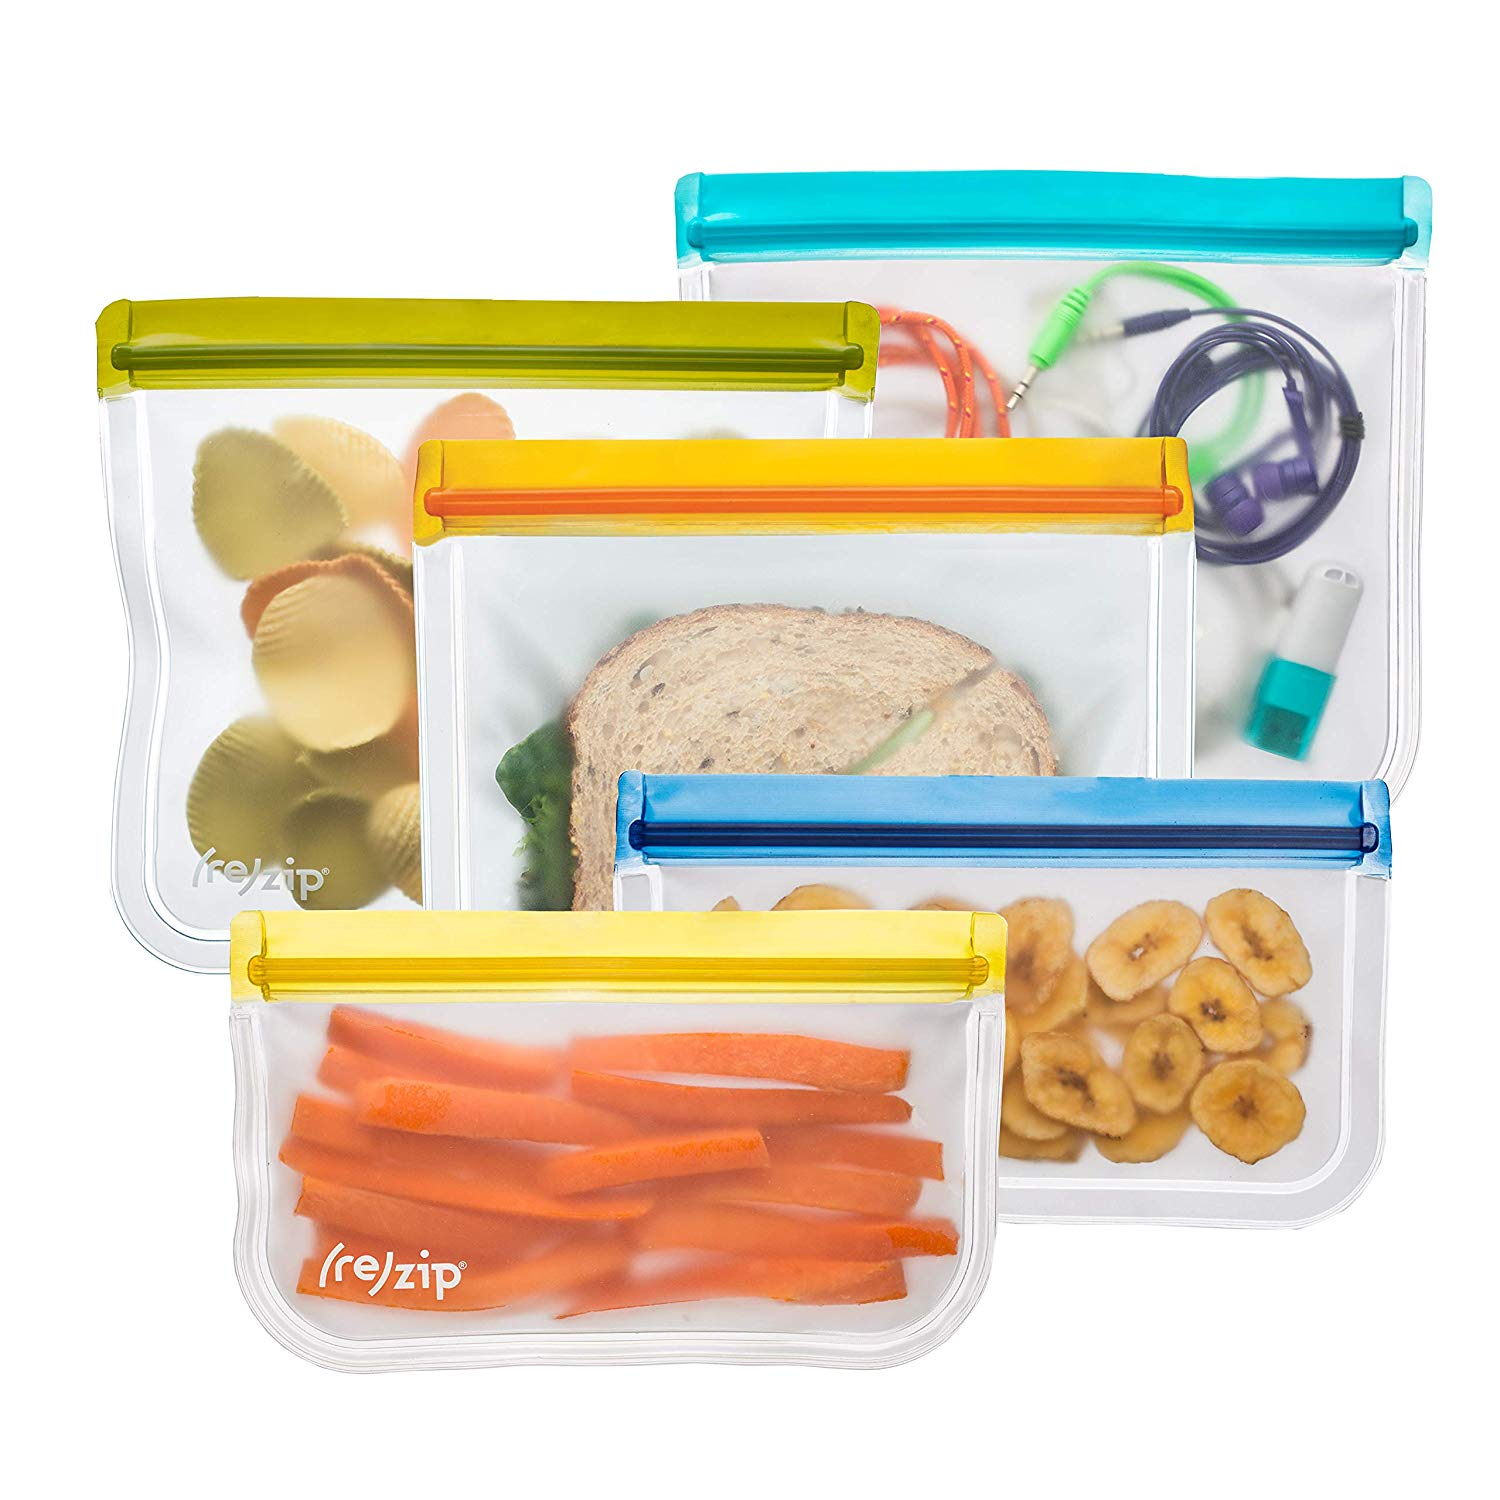 (re)zip - Lay Flat Lunch & Snack Bag Kit